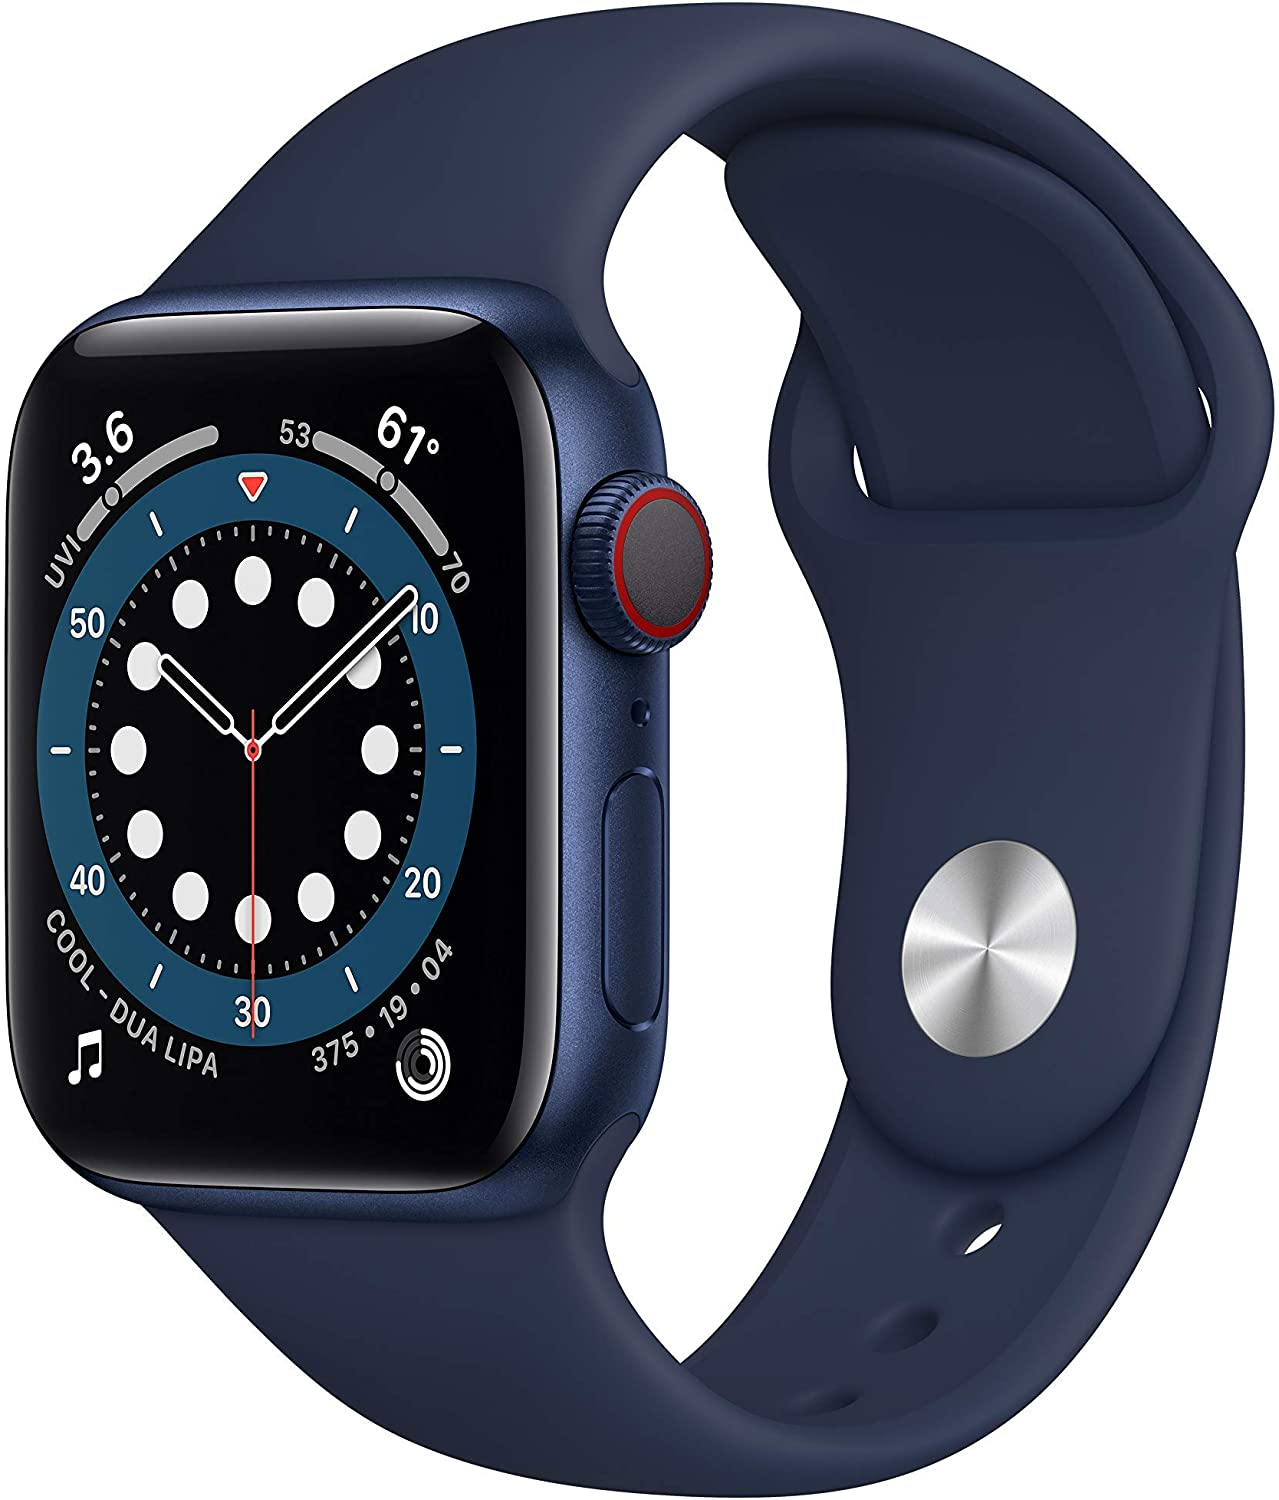 New AppleWatch Series 6 (GPS + Cellular, 40mm) - Blue Aluminum Case with Deep Navy Sport Band (Renewed)